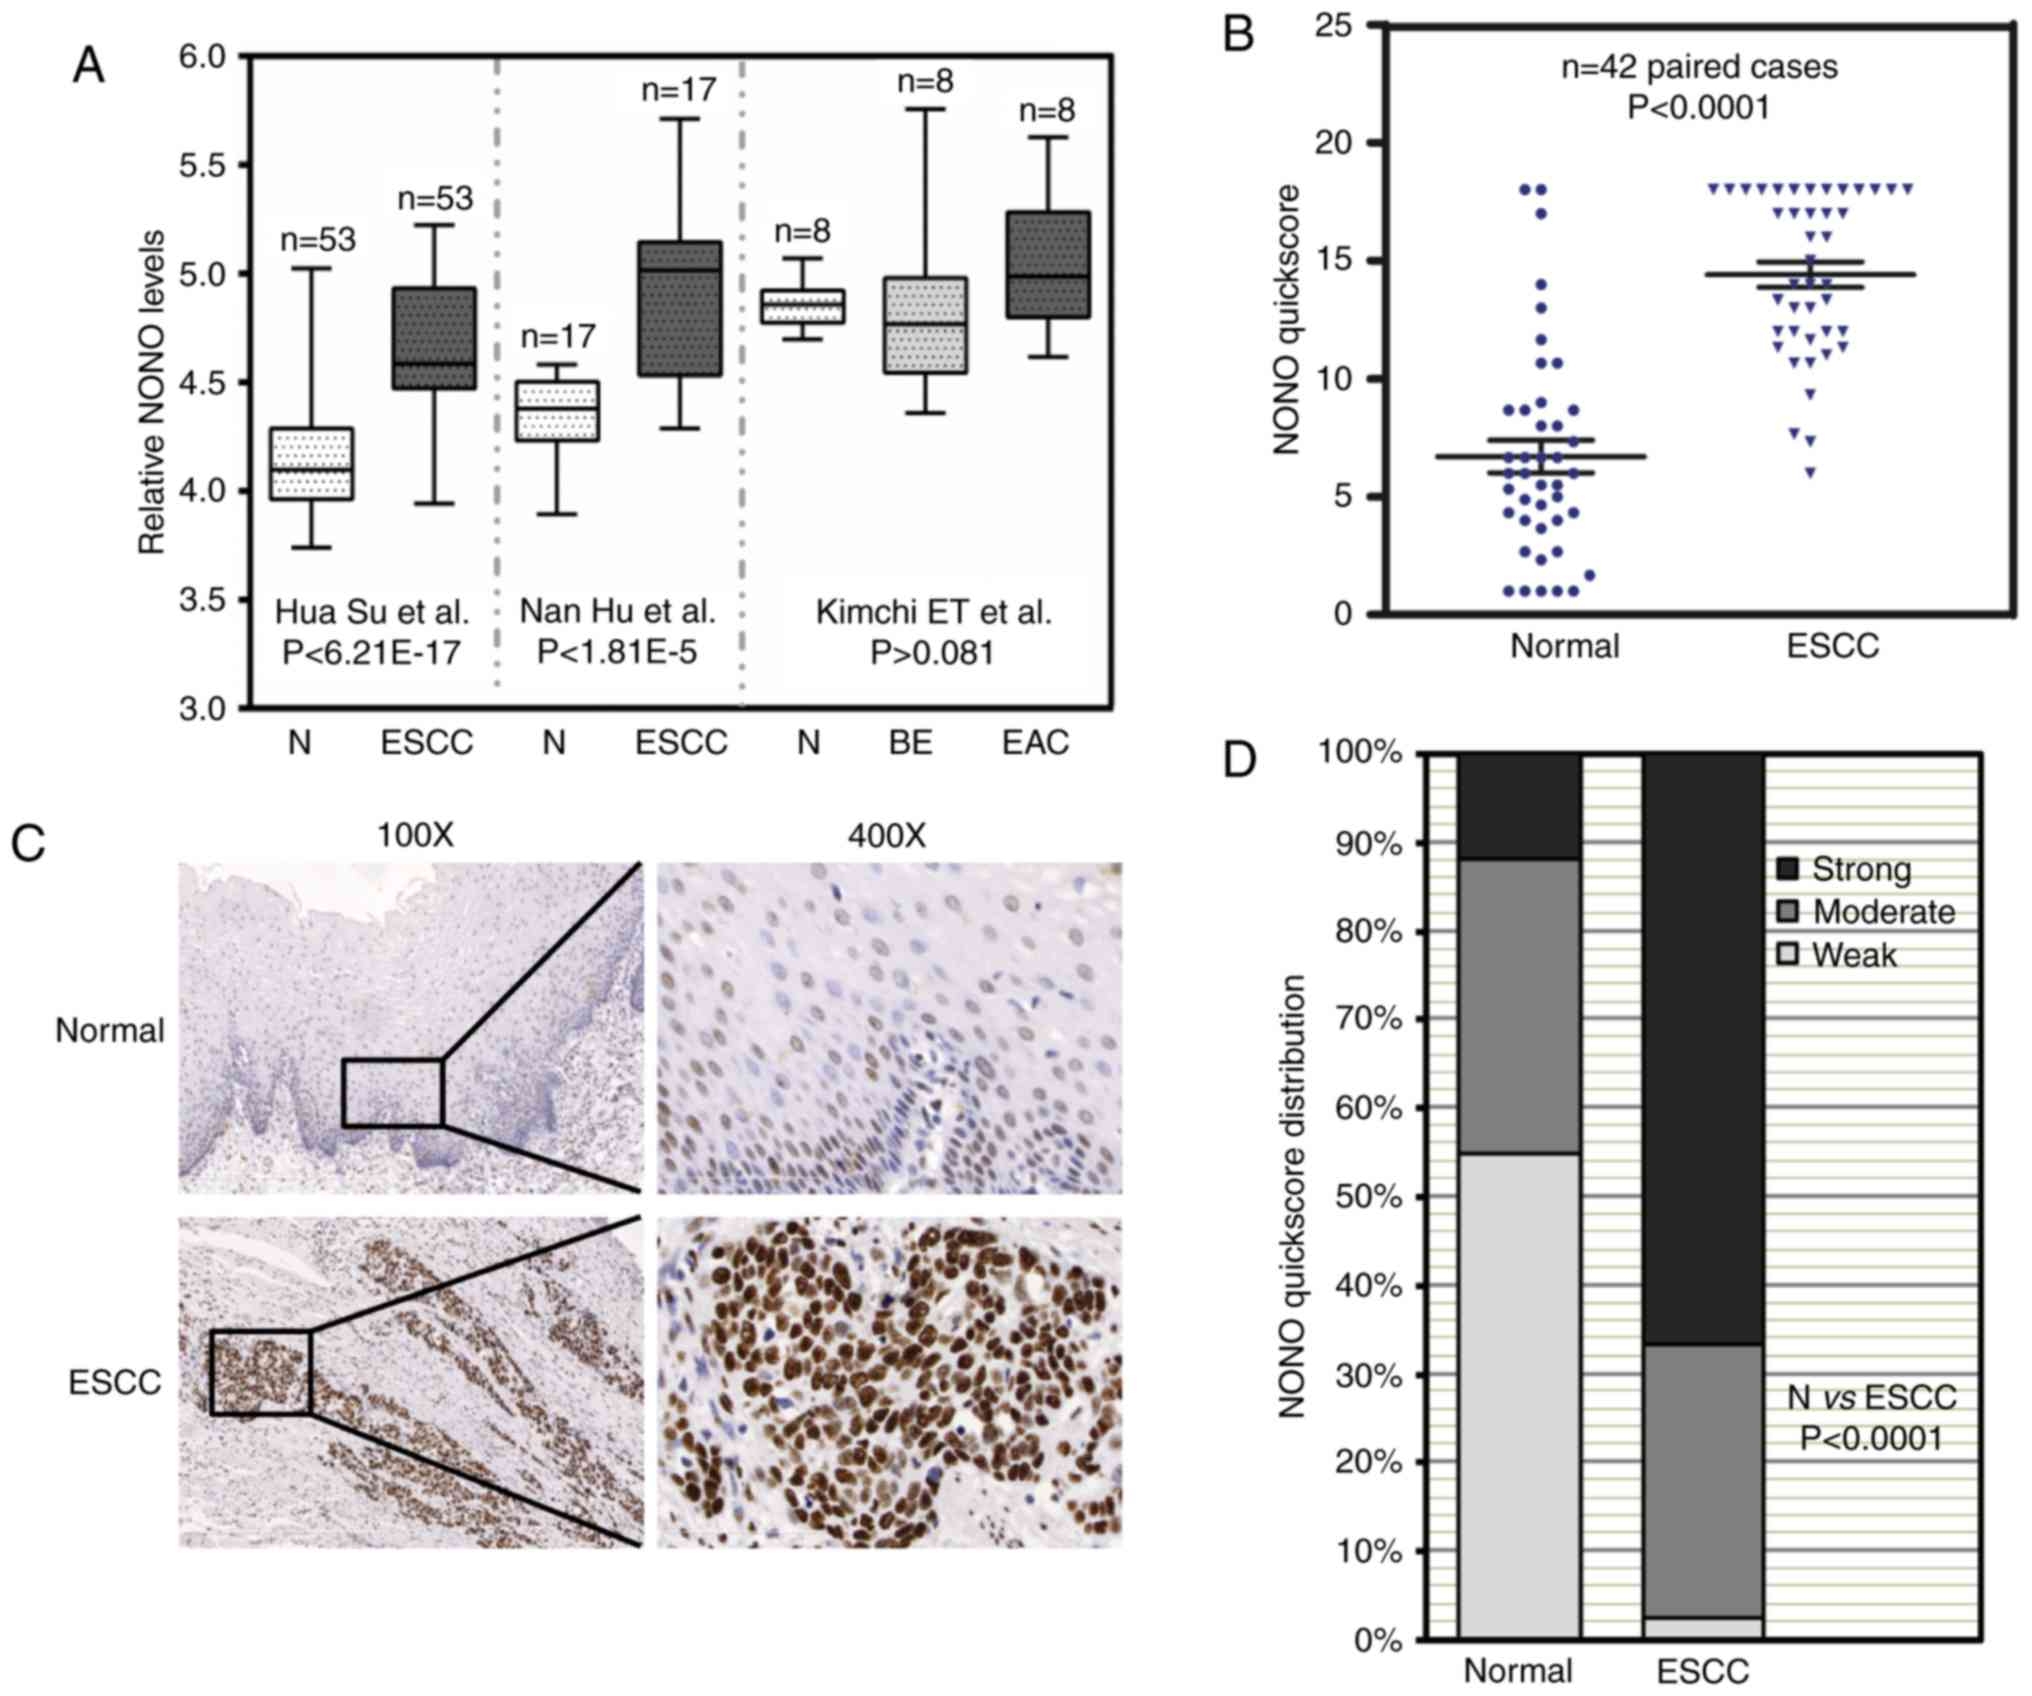 Downregulation Of Nono Induces Apoptosis Suppressing Growth And Clifford Matrix 1 Wiring Diagram Figure Increased Expression In Escc Tissue Samples A Three Independent Microarray Data From The Oncomine Database Showed That Mrna Levels